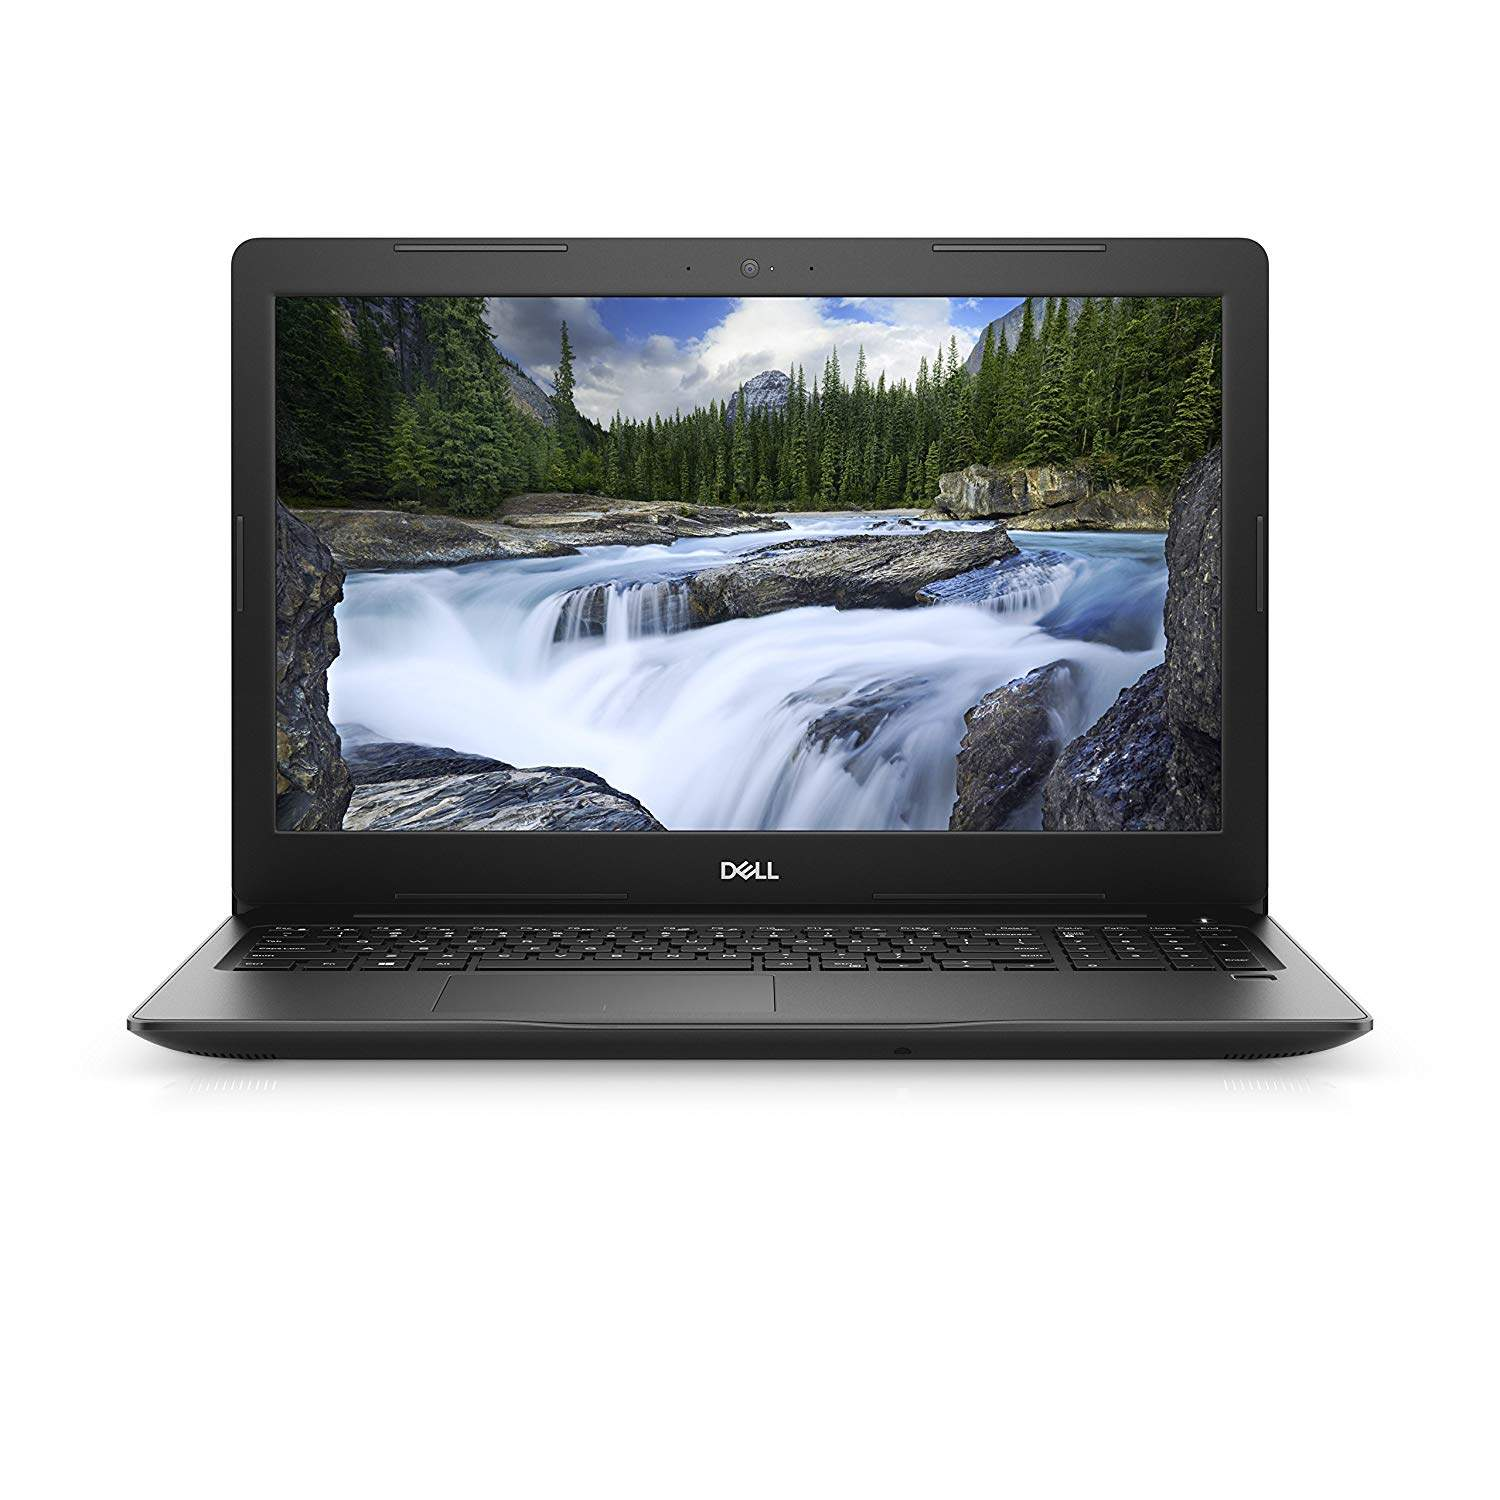 Dell Vostro 15 3590 Laptop 10th Generation Intel Core I5-10210U Processor (6MB Cache, Up To 4.2 GHz)1TB 5400RPM 2.5 Es SATA Hard Drive,4GBRAM